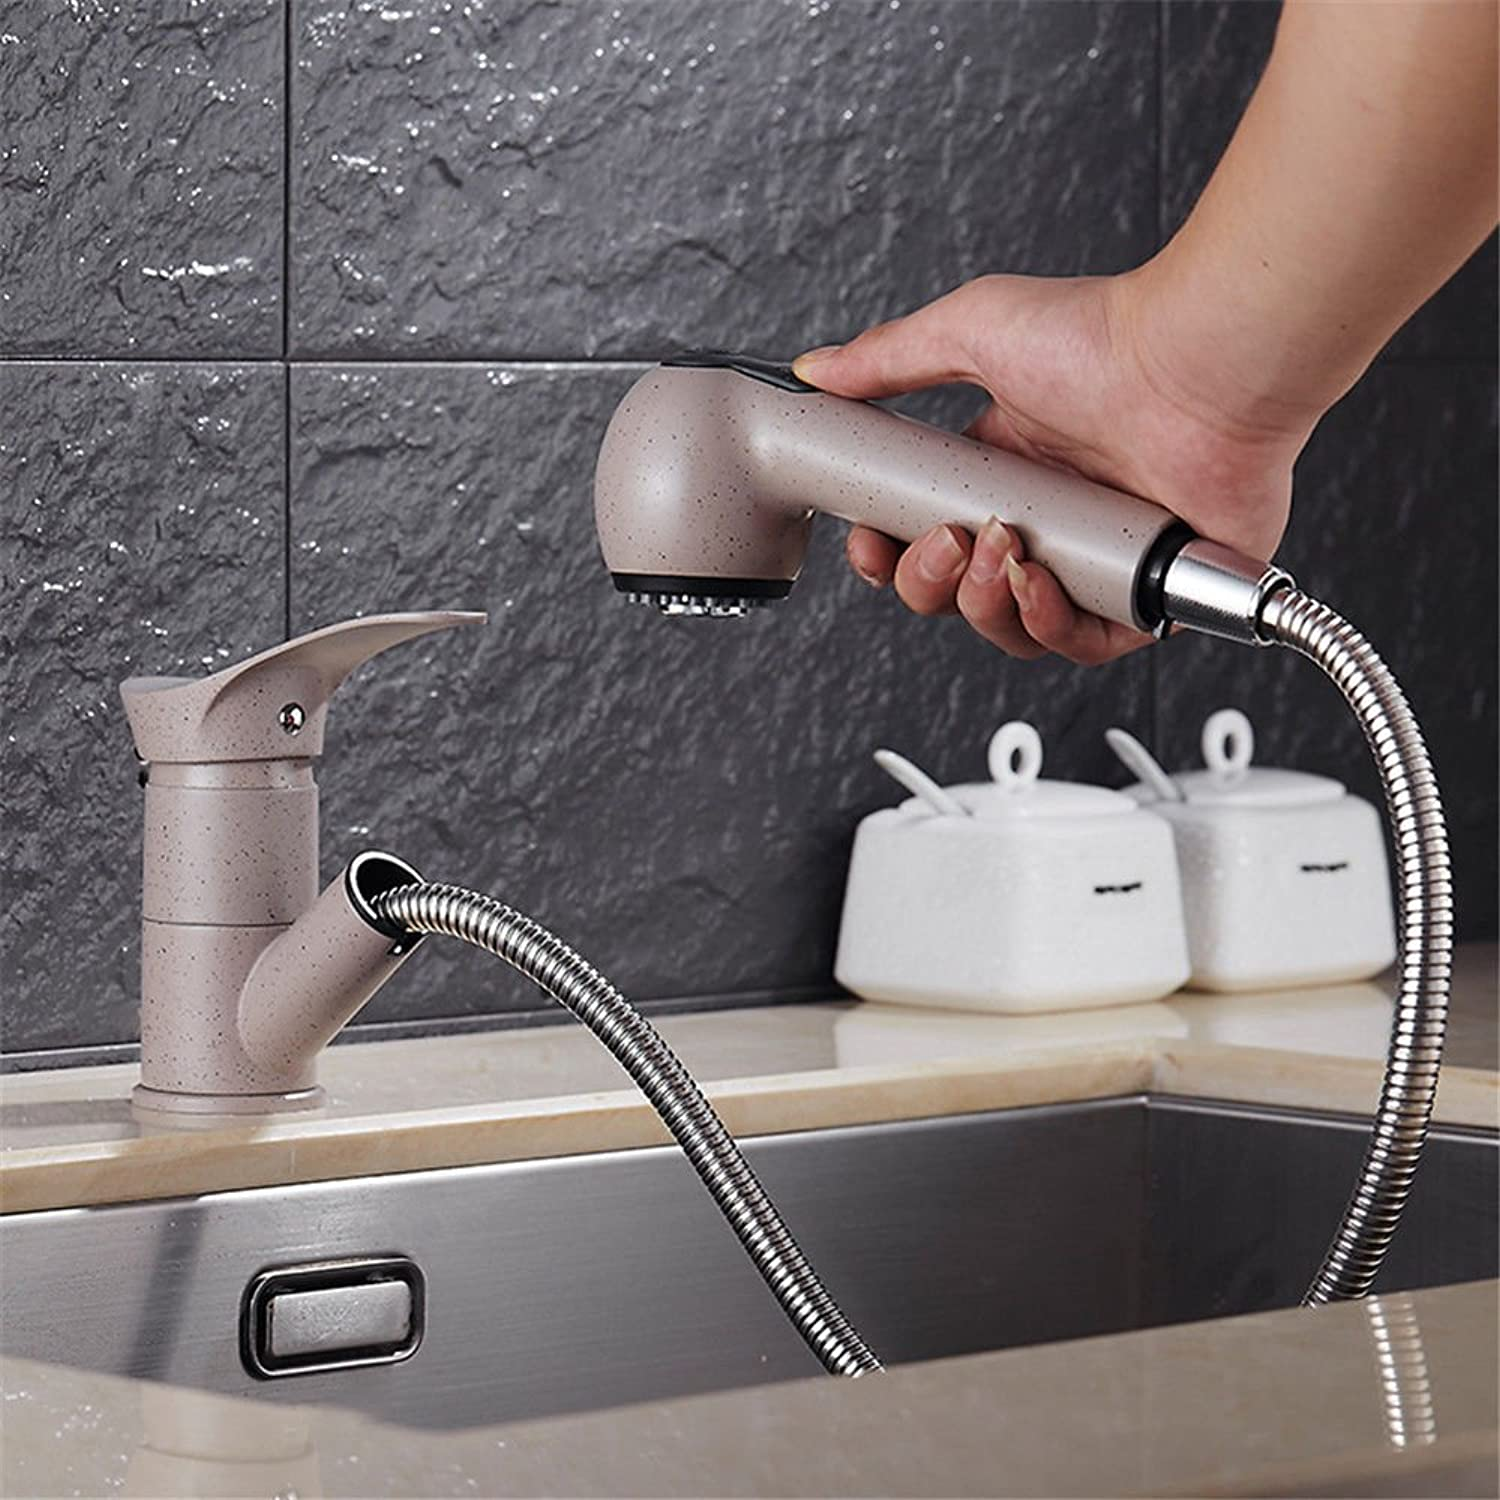 ETERNAL QUALITY Bathroom Sink Basin Tap Brass Mixer Tap Washroom Mixer Faucet Kitchen faucet granite dish washing basin-copper-accessible drop-down cold water blasting oa